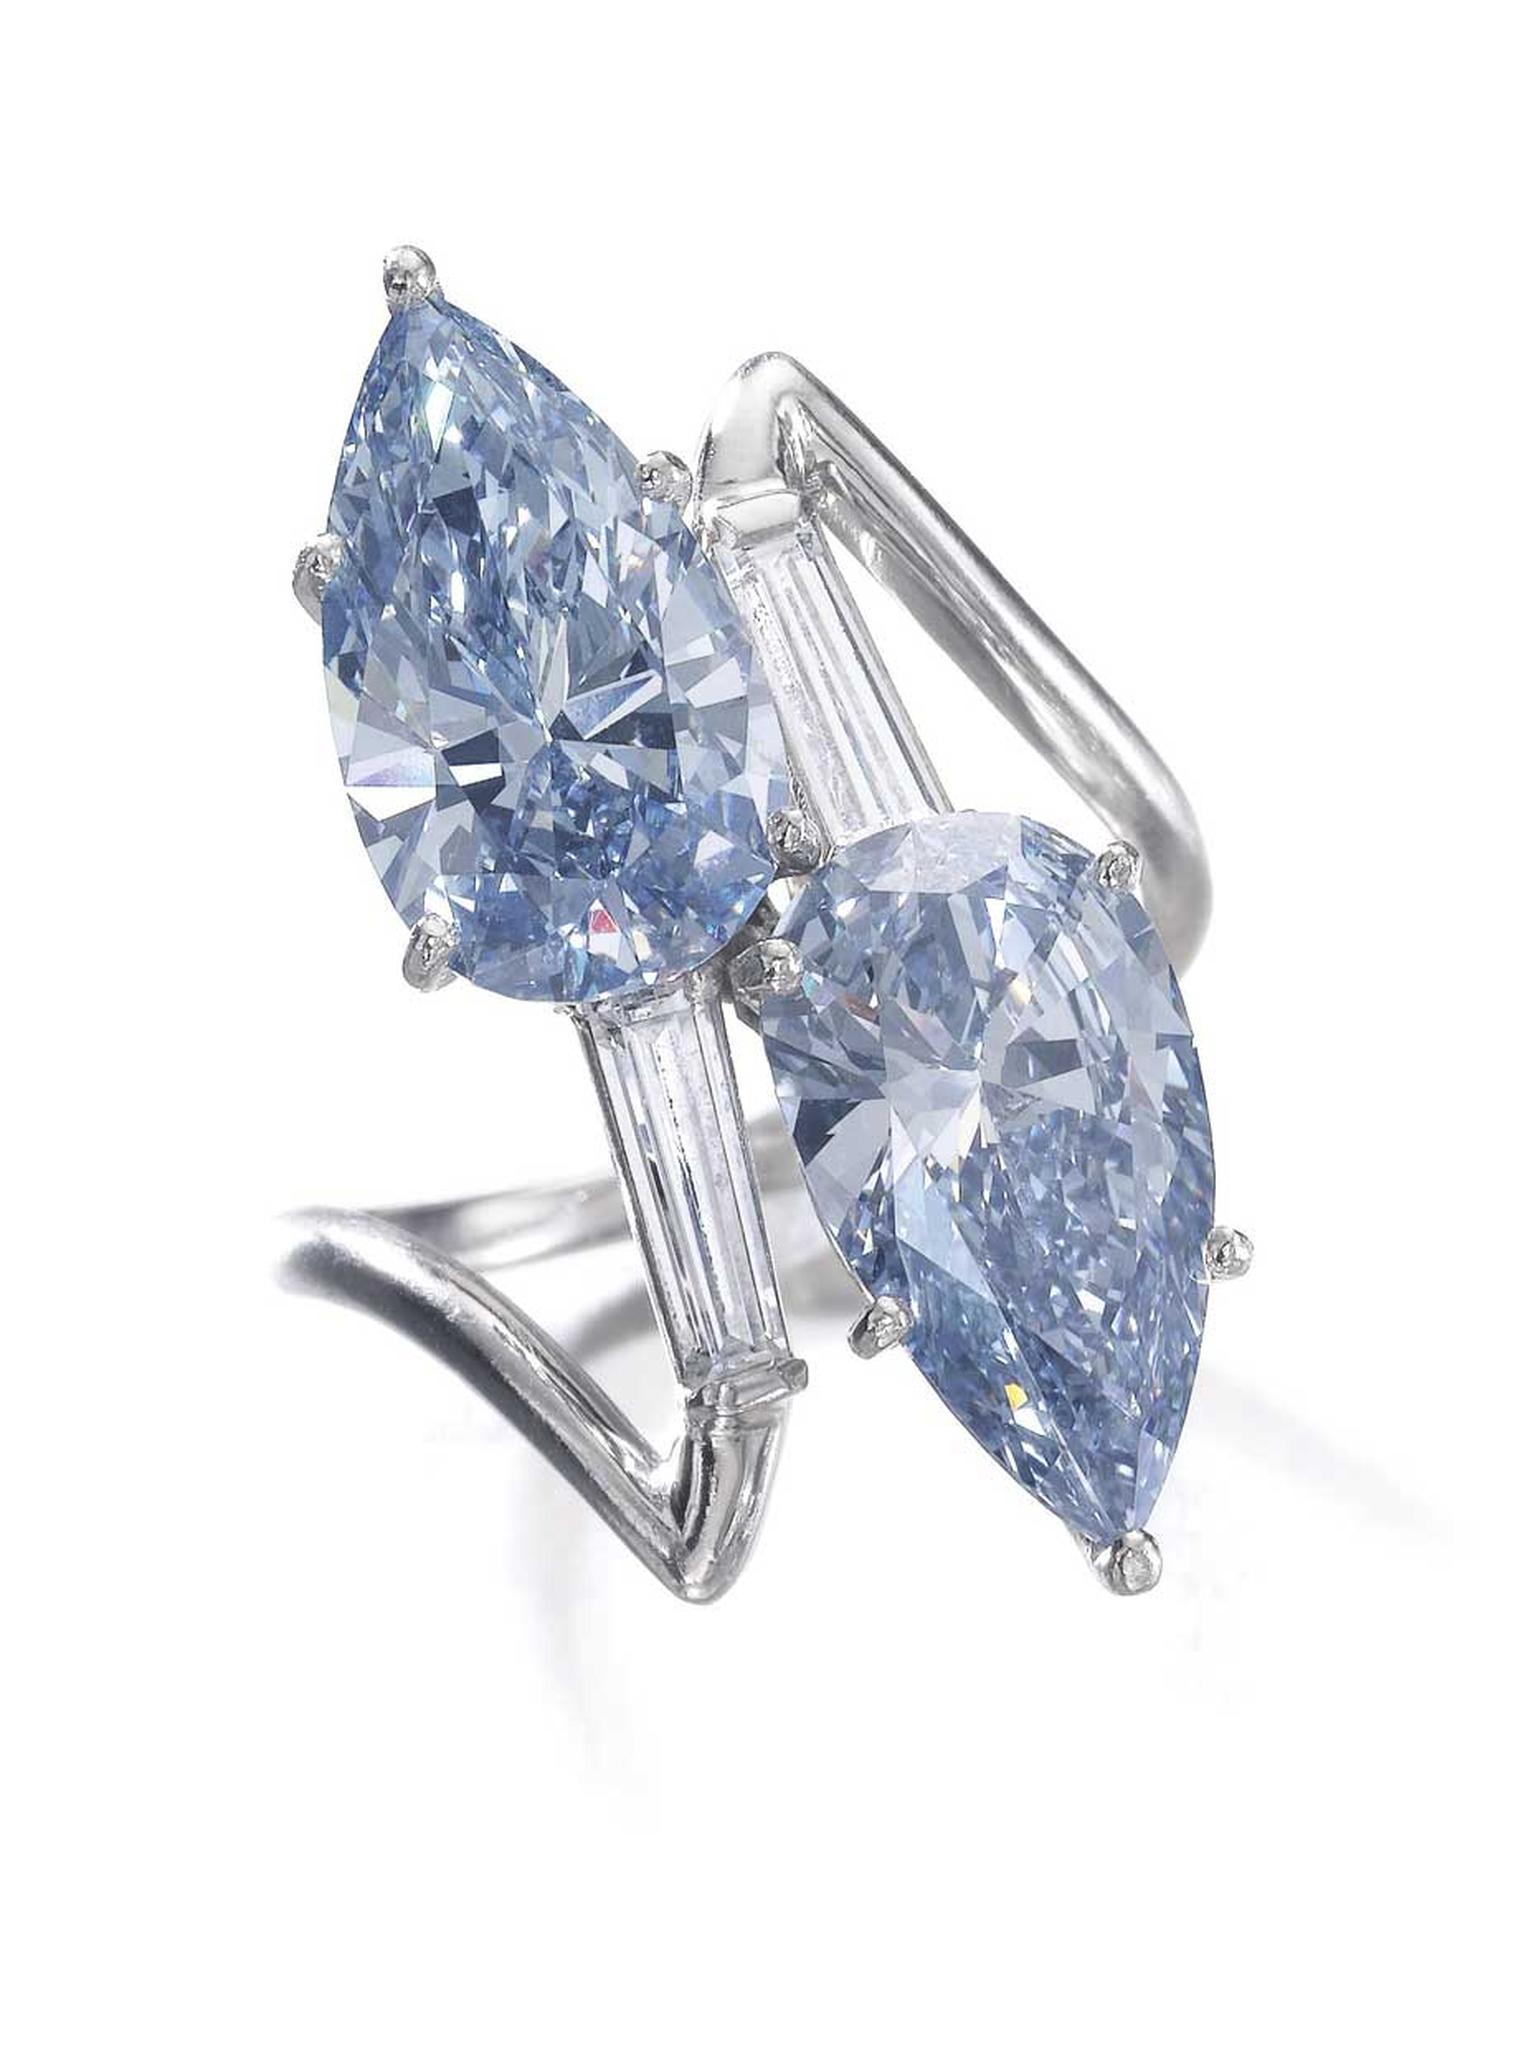 Fancy Vivid blue and Fancy Intense blue diamond ring with